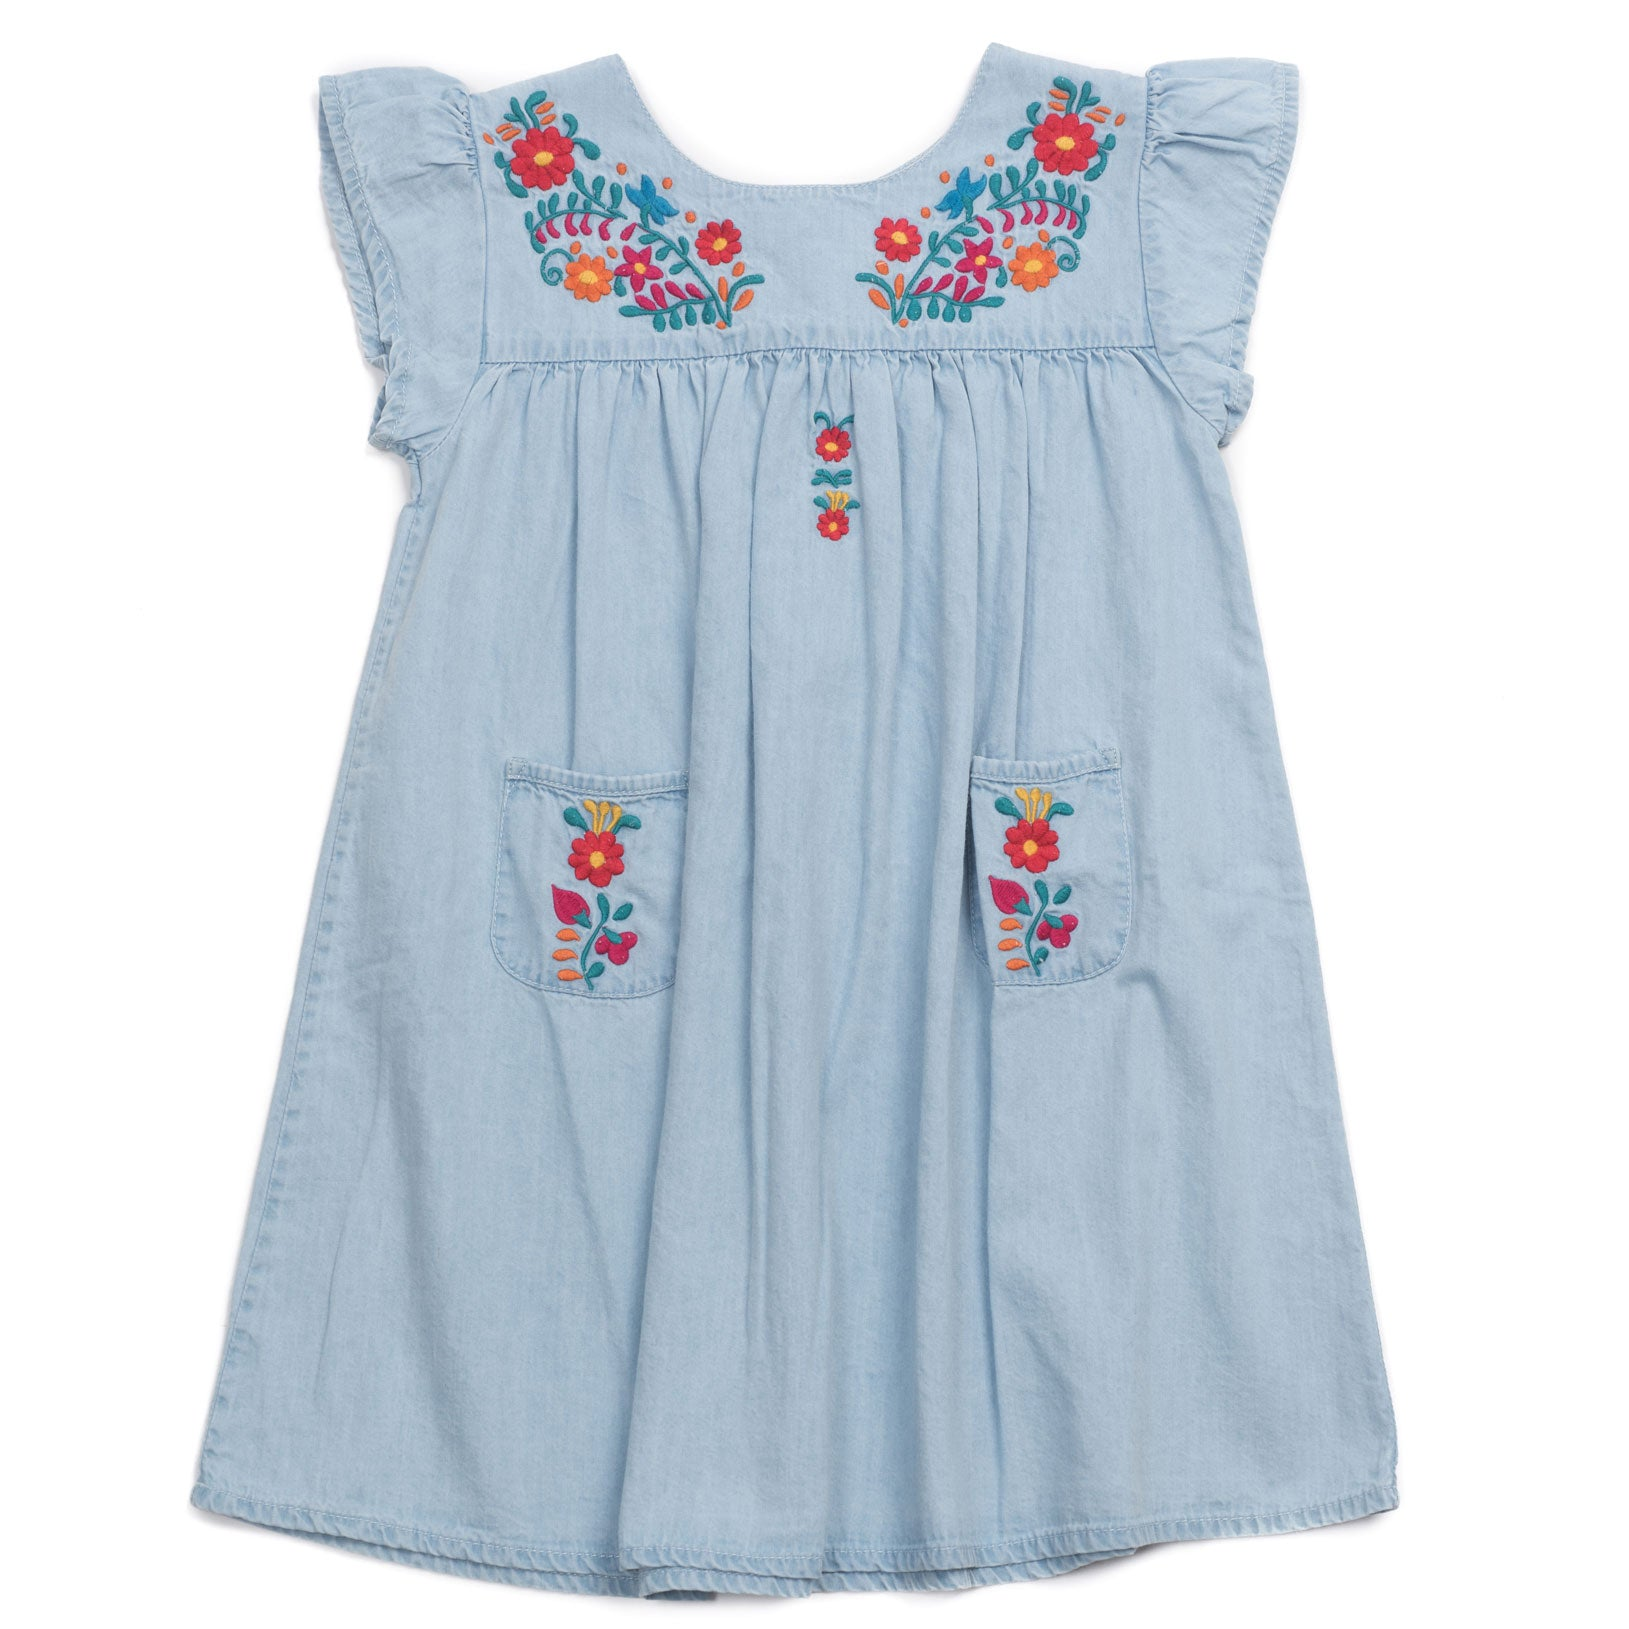 8c0d7607b Bonton Chambray Colorful Embroidered Dress | Ladida